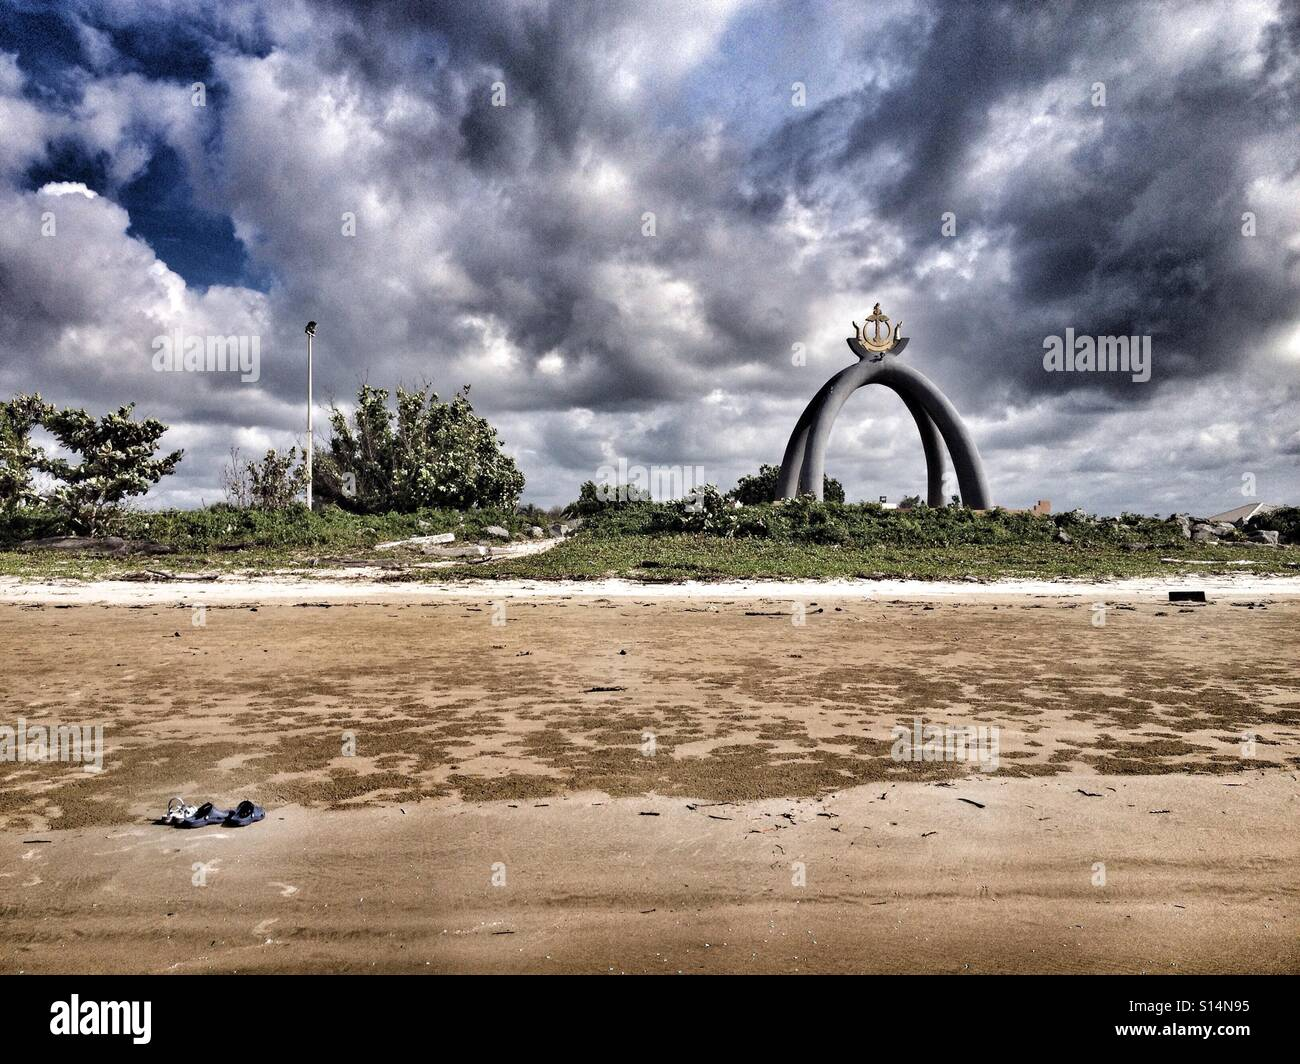 Sandy Beach Next To The Billionth Barrel Monument In The Kingdom Of Brunei Darussalam, On Borneo Island - Stock Image